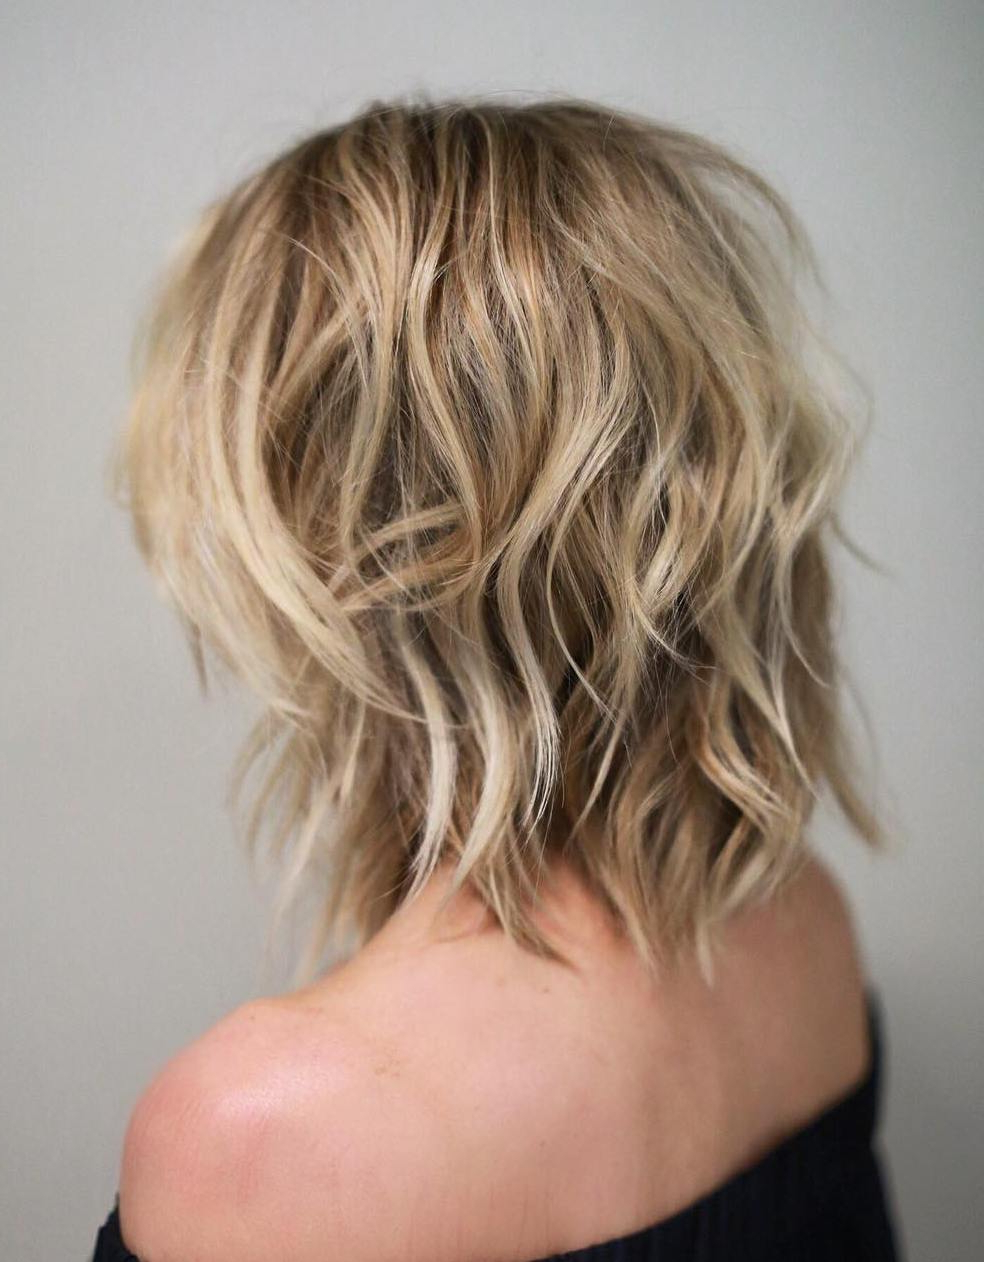 Shag Haircuts And Hairstyles In 2018 — Therighthairstyles Intended For Short Shaggy Layered Haircut (View 4 of 25)